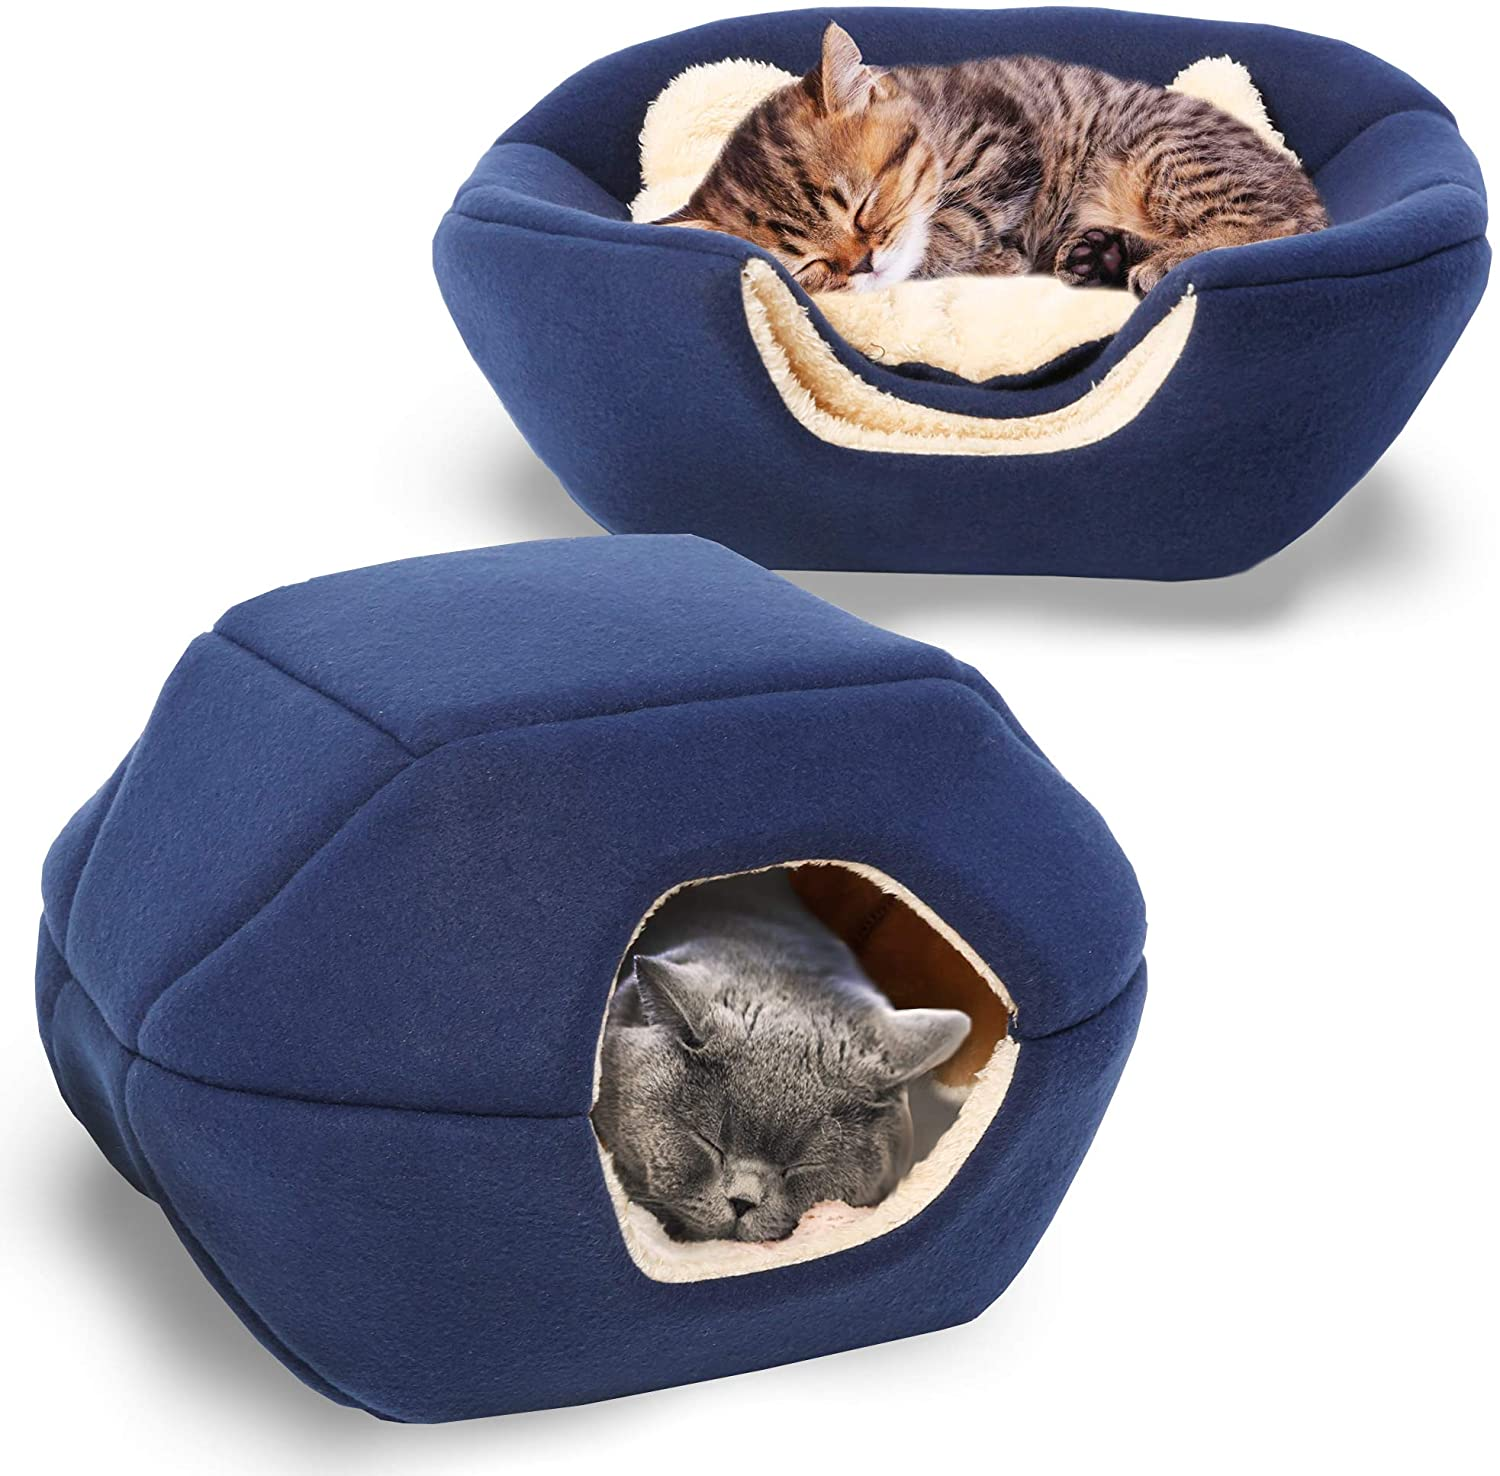 10 Best Cat Caves 2021(Reviewed By Cats)